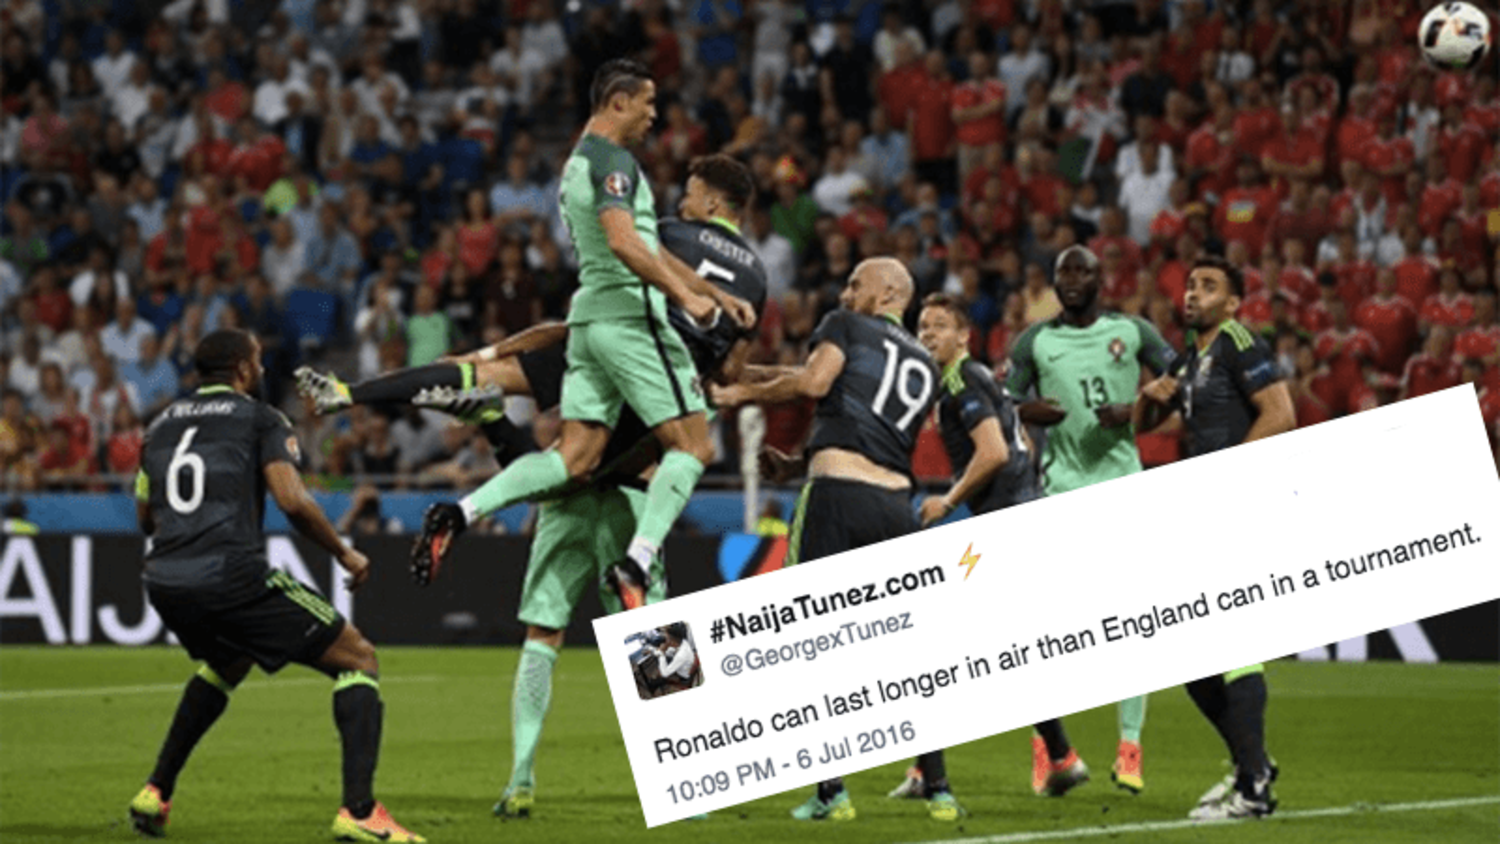 Best reactions to Cristiano Ronaldo's Performance and Insane Leap against Wales